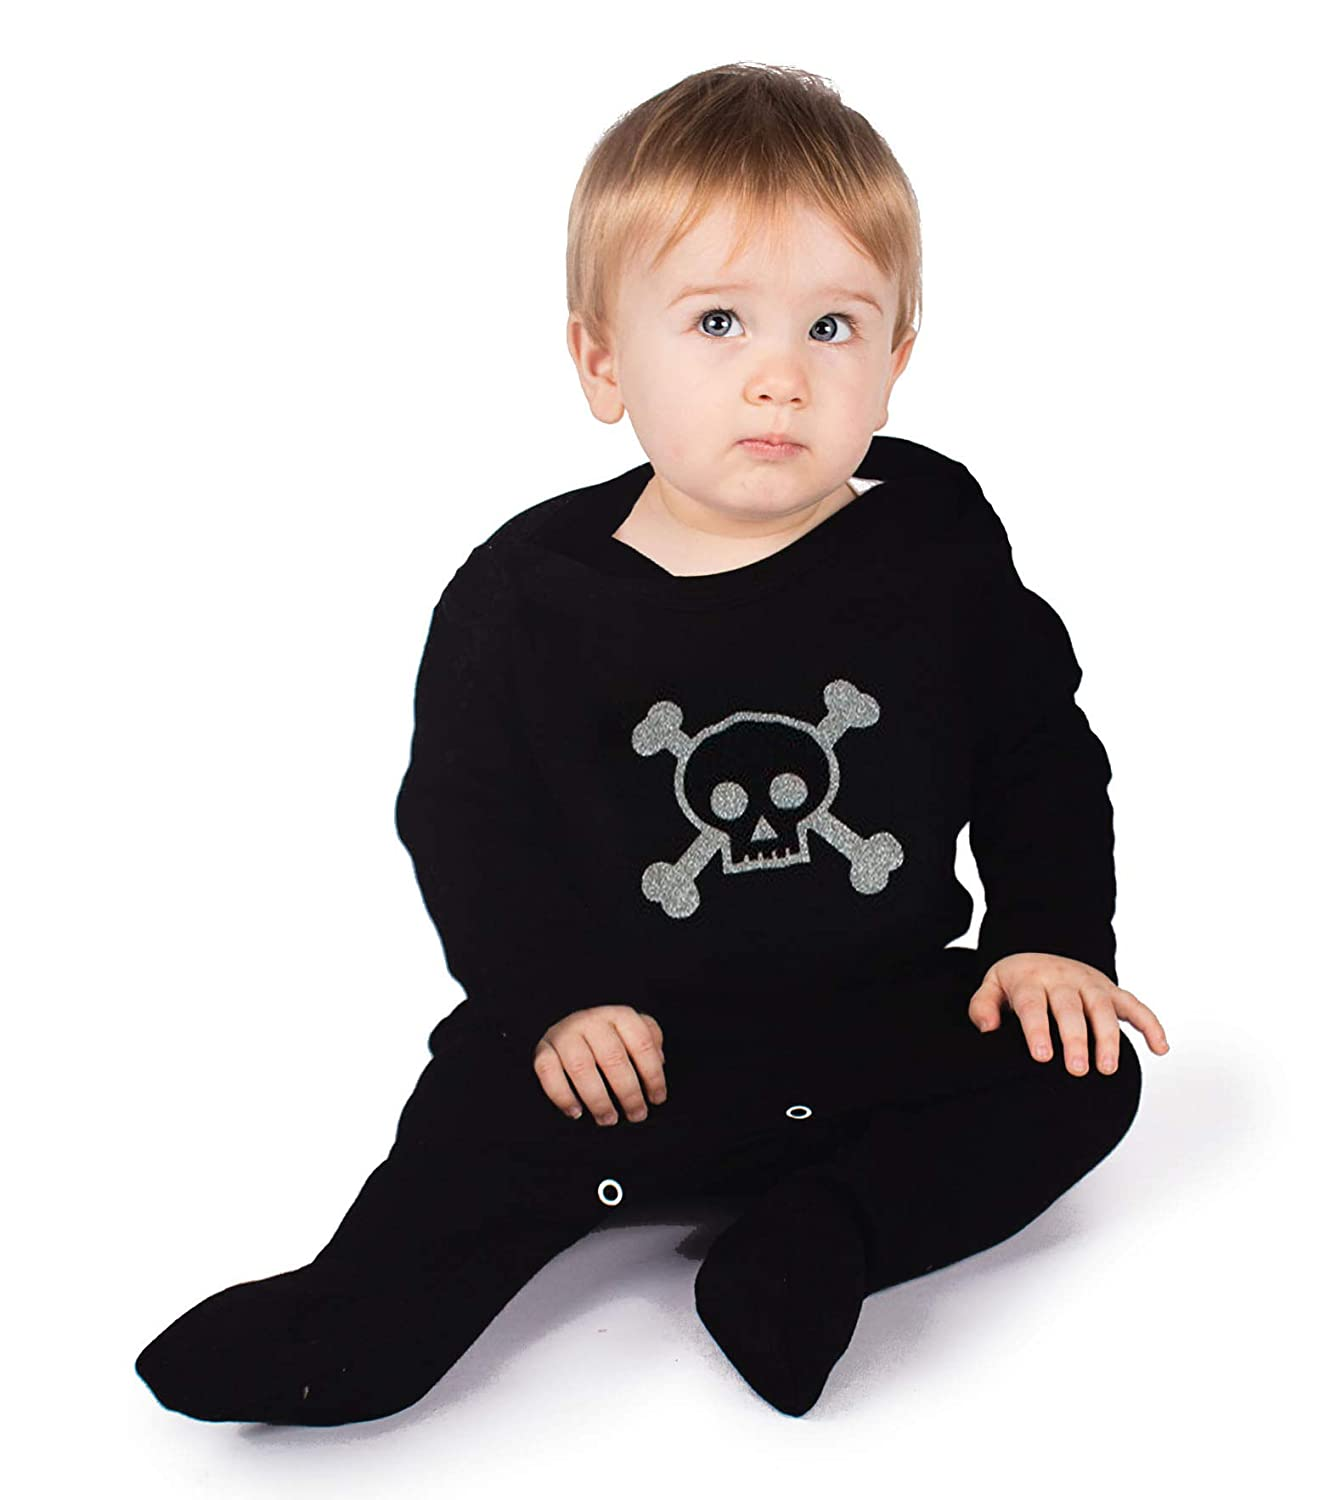 BABY MOOS UK Skull Baby Sleepsuit for Boys or Girls Ideal Baby Shower New Cool Skull /& Crossbones Pirate Romper Outfit Goth Baby Clothes or 1st Halloween Gift 6-12 months